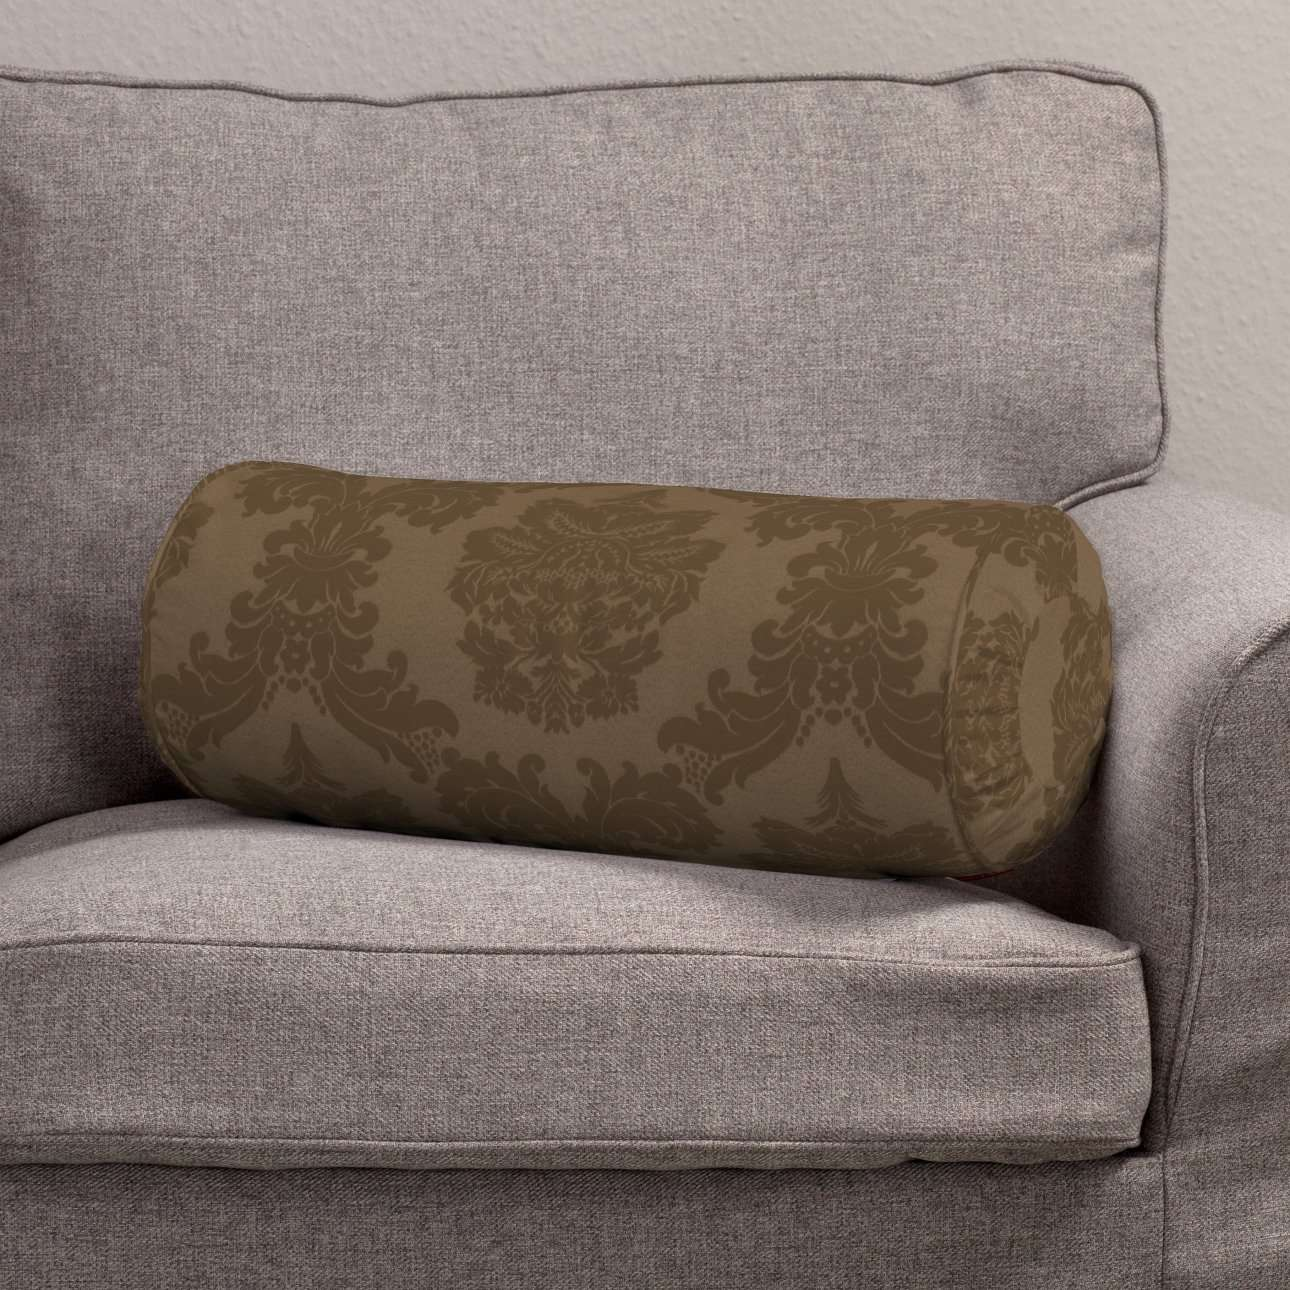 Bolster cushion with pleats Ø 20 × 50 cm (8 × 20 inch) in collection Damasco, fabric: 613-88